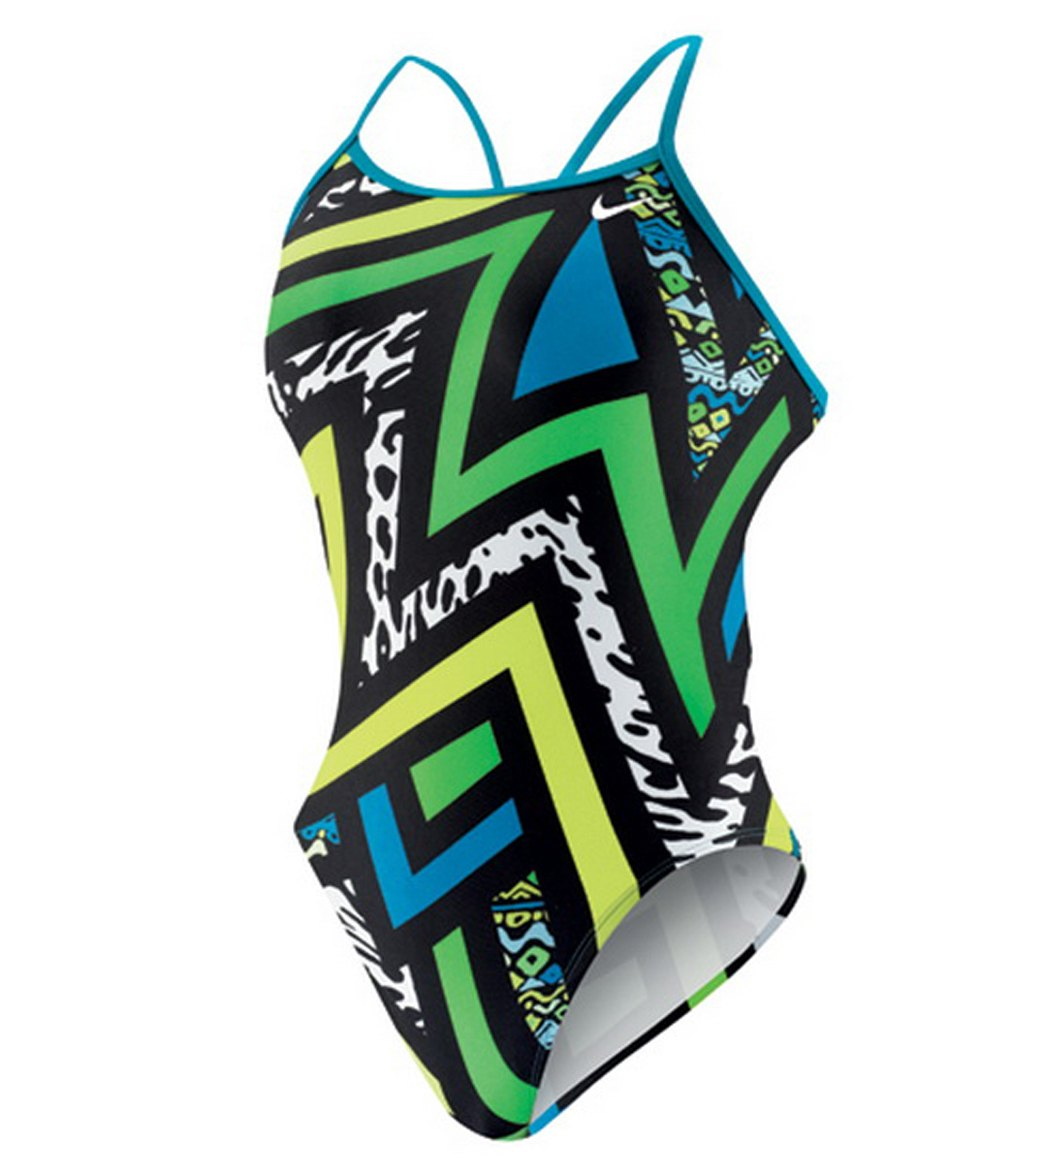 Nike Swim POW! Modern Lingerie Tank One Piece Swimsuit at SwimOutlet.com -  Free Shipping